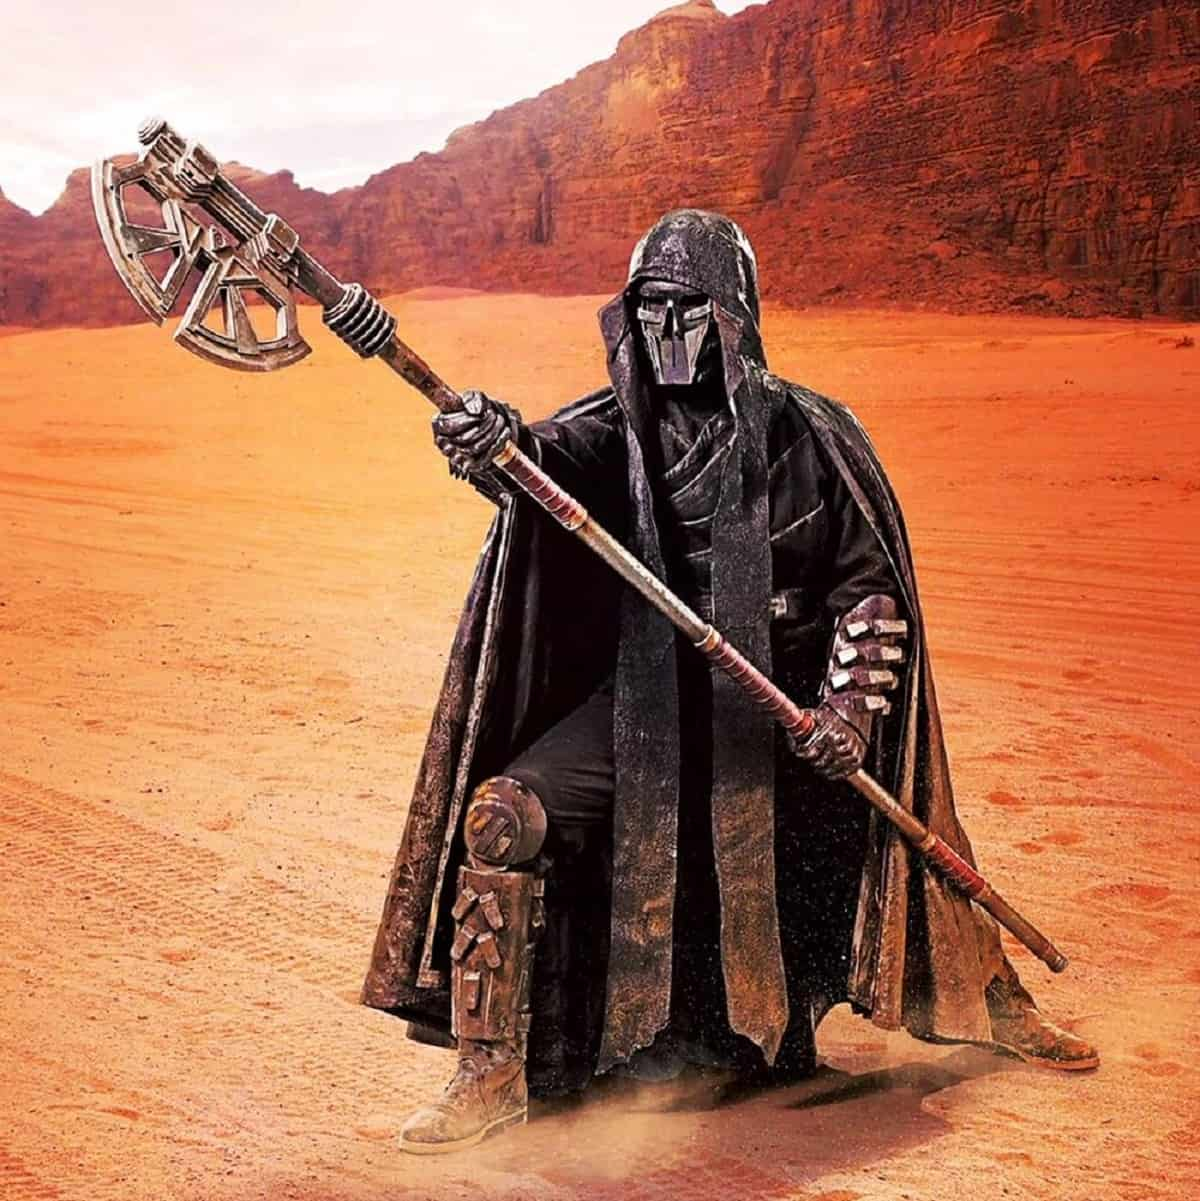 Knight of Ren with axe